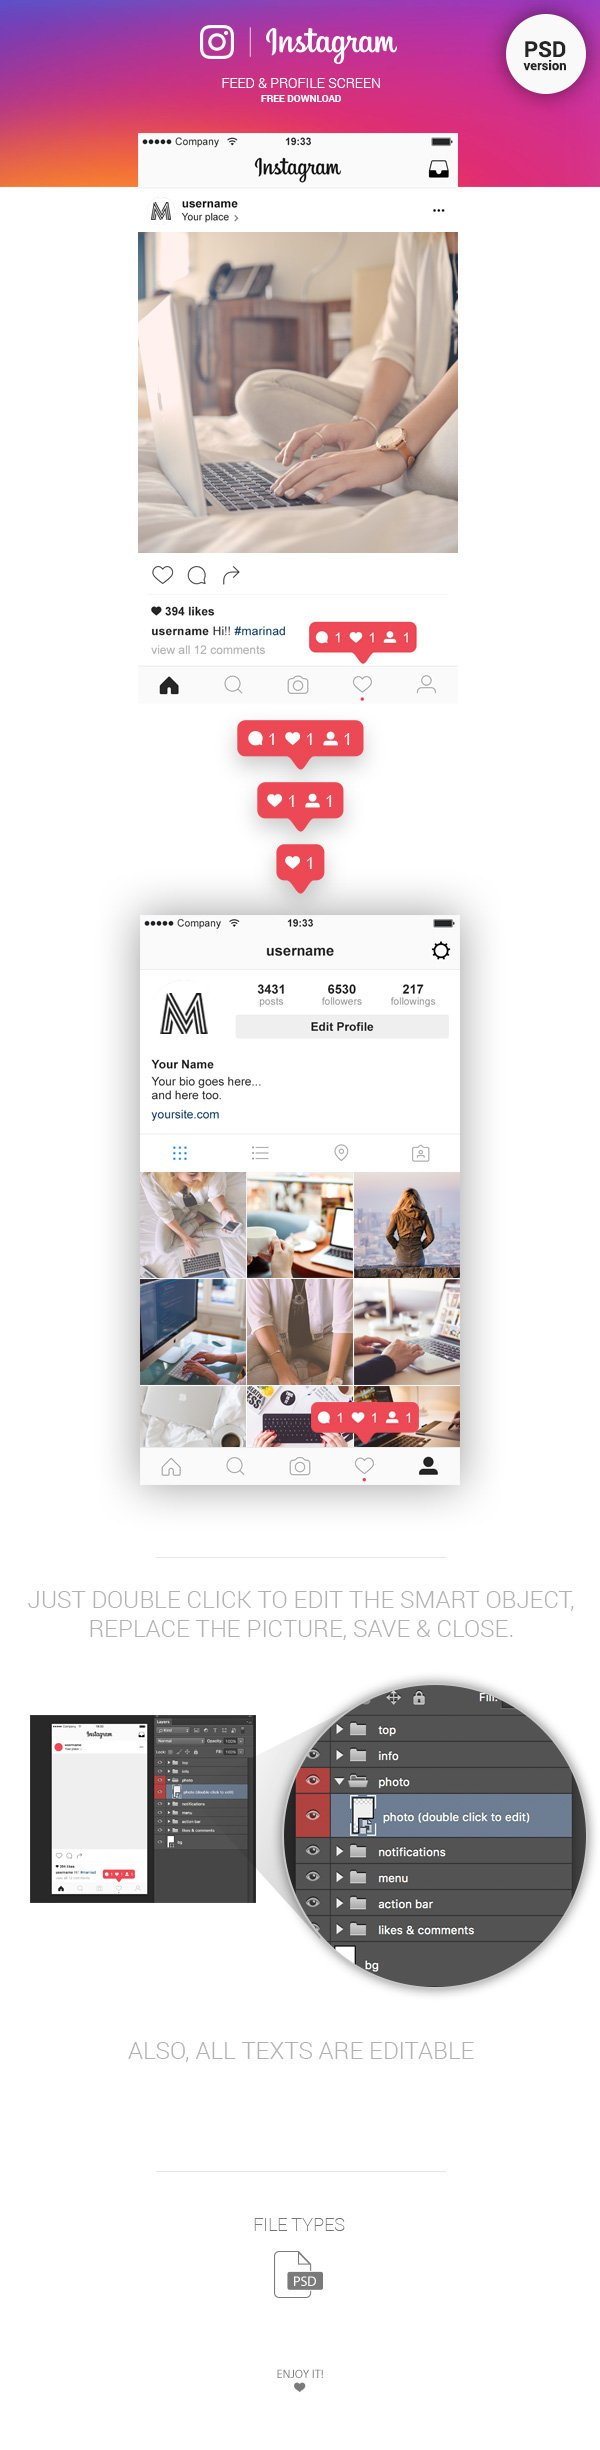 Instagram Feed & Profile Screen UI (.Psd) скачать бесплатно